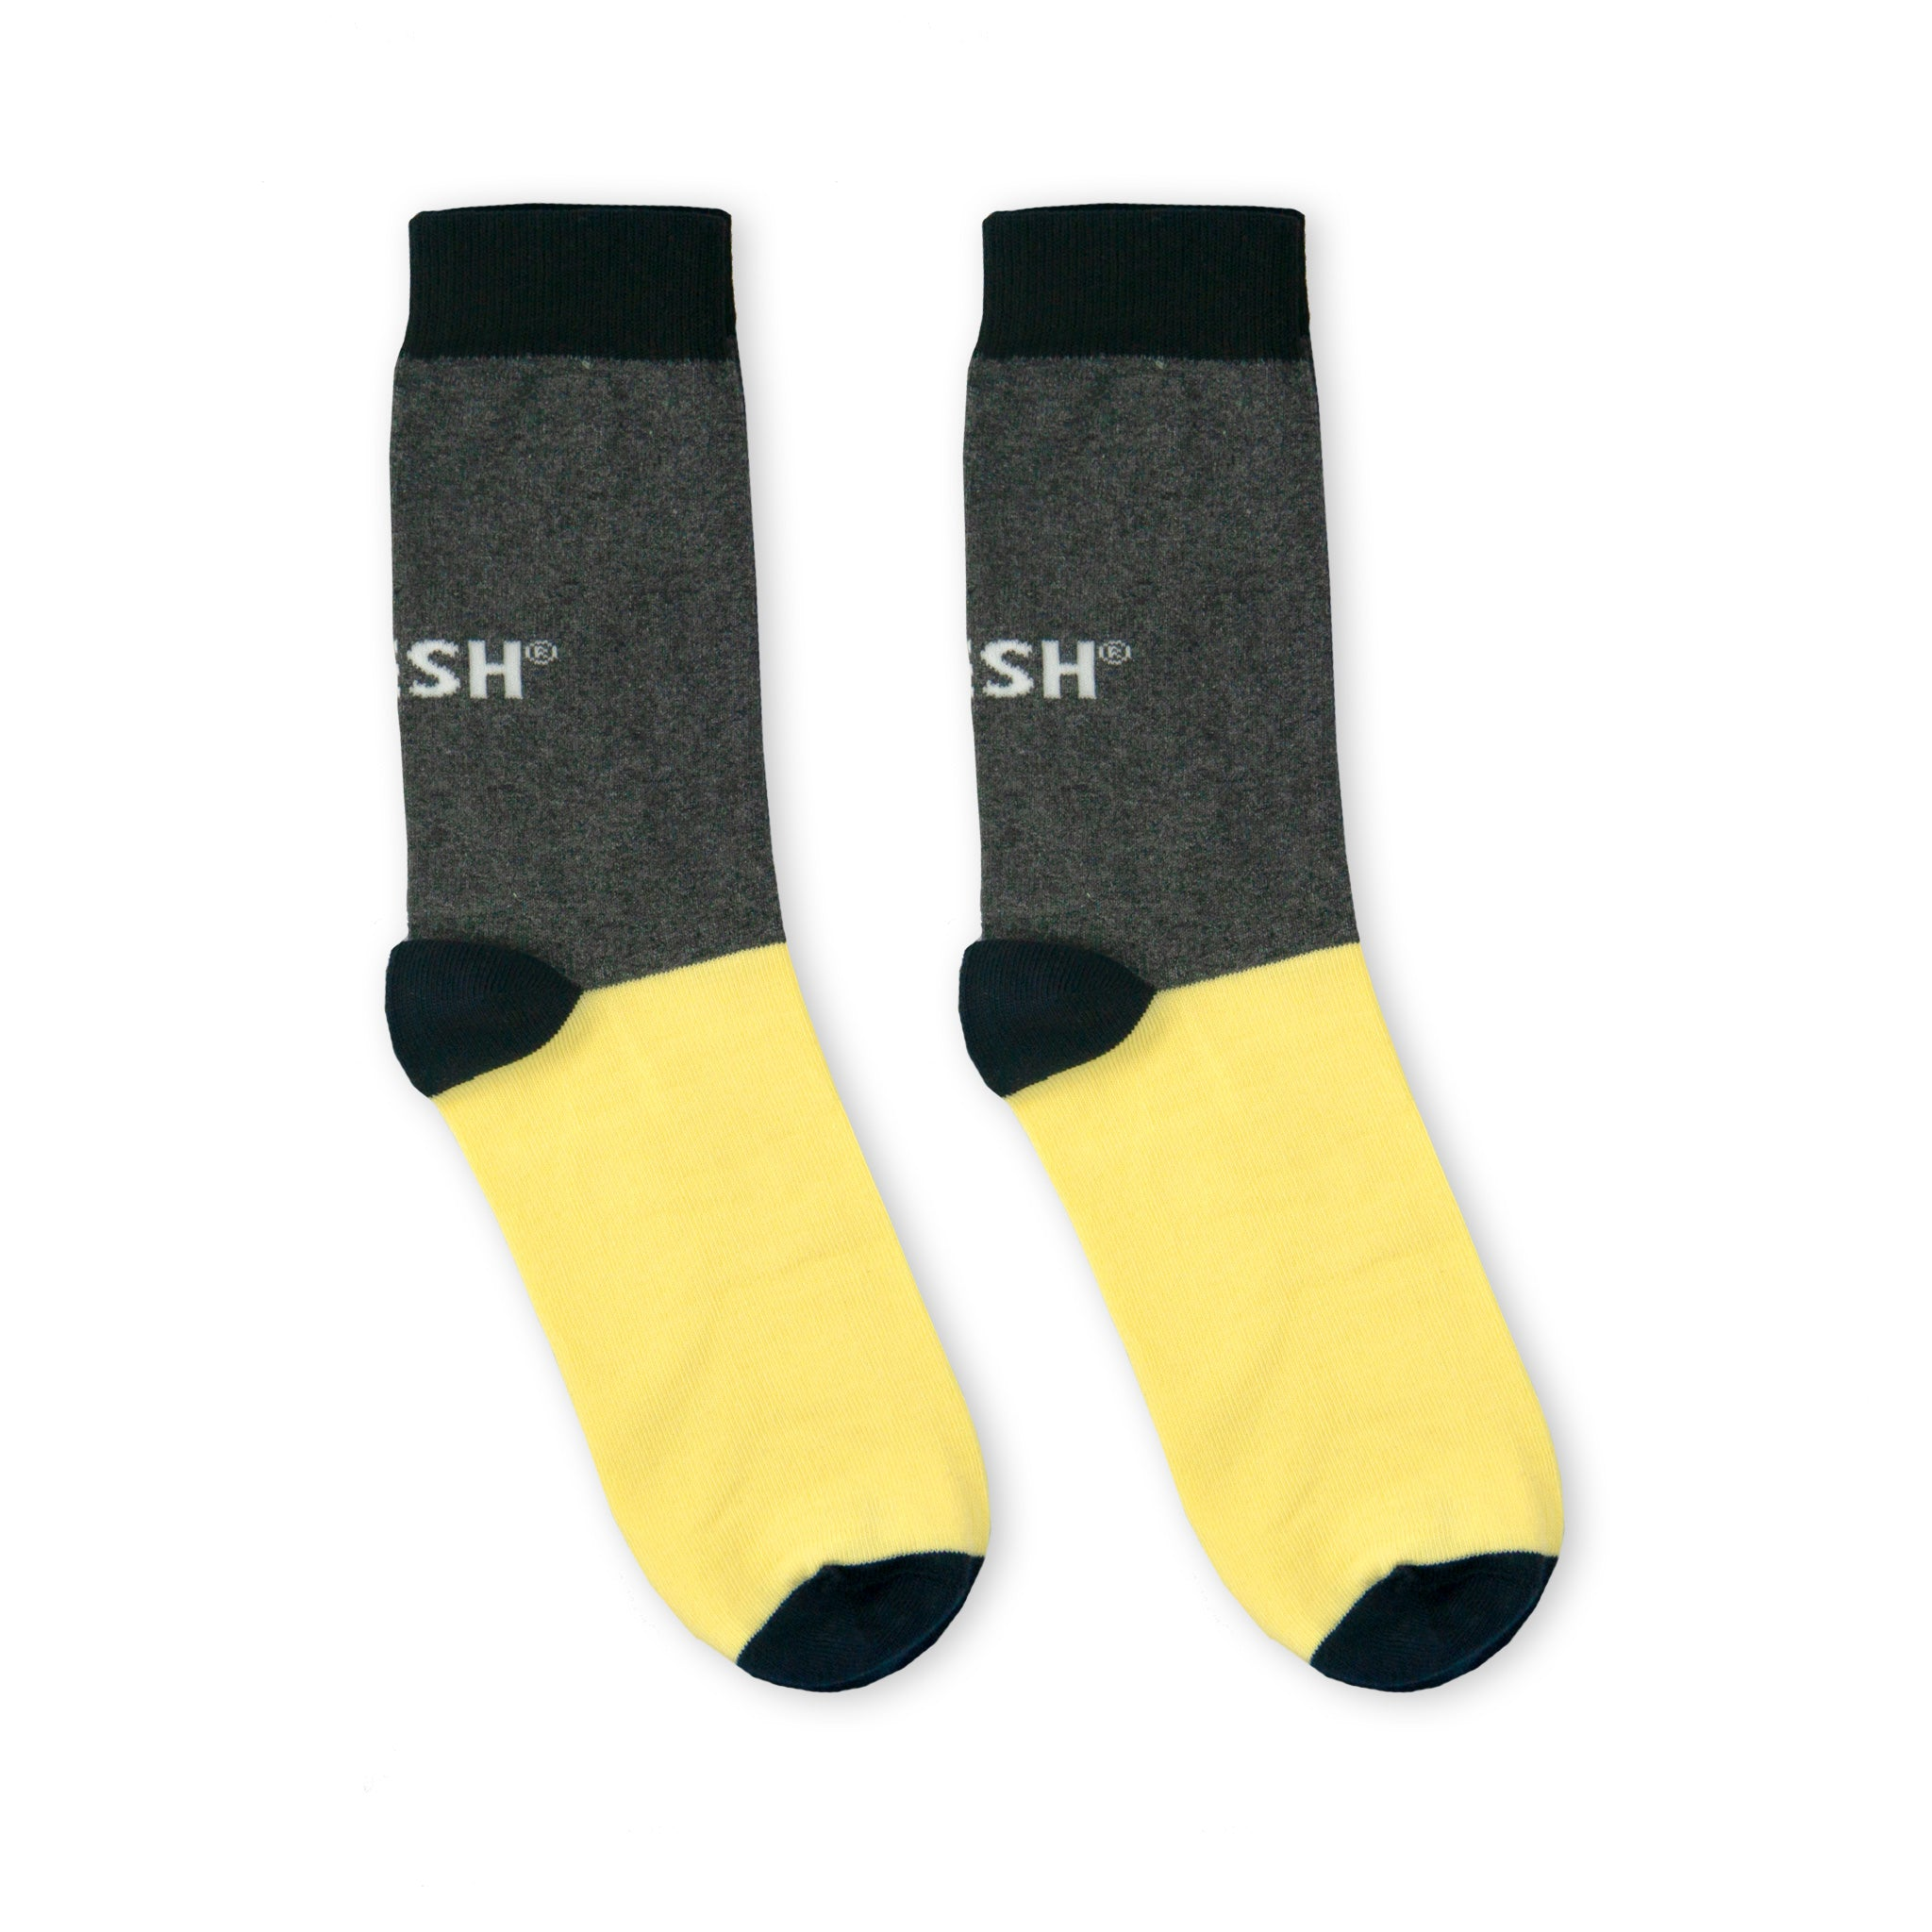 Single Socks (grey+yellow)